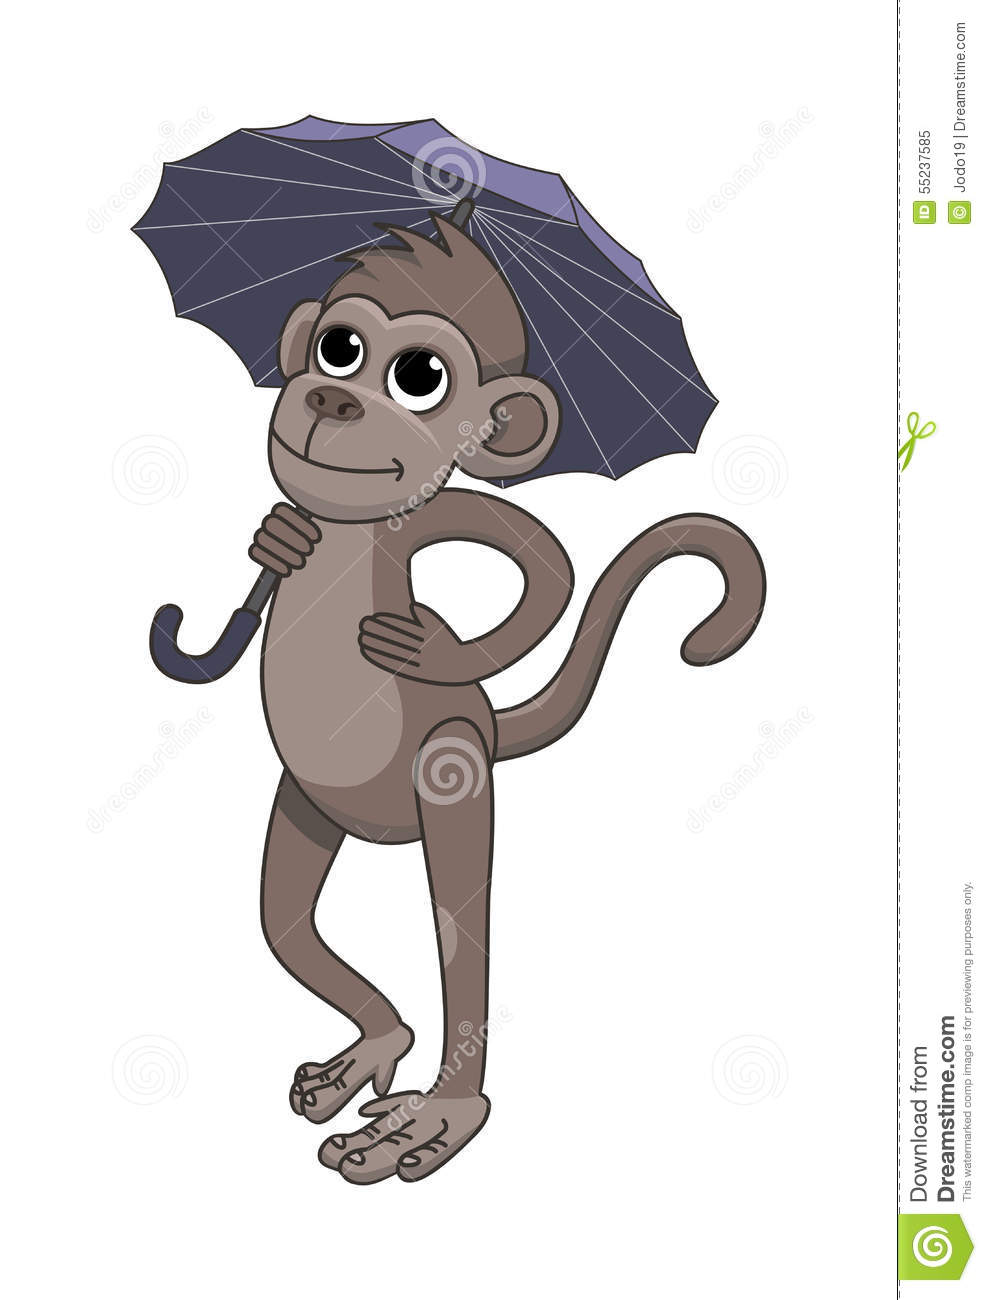 And Black Holding Umbrella White Monkey